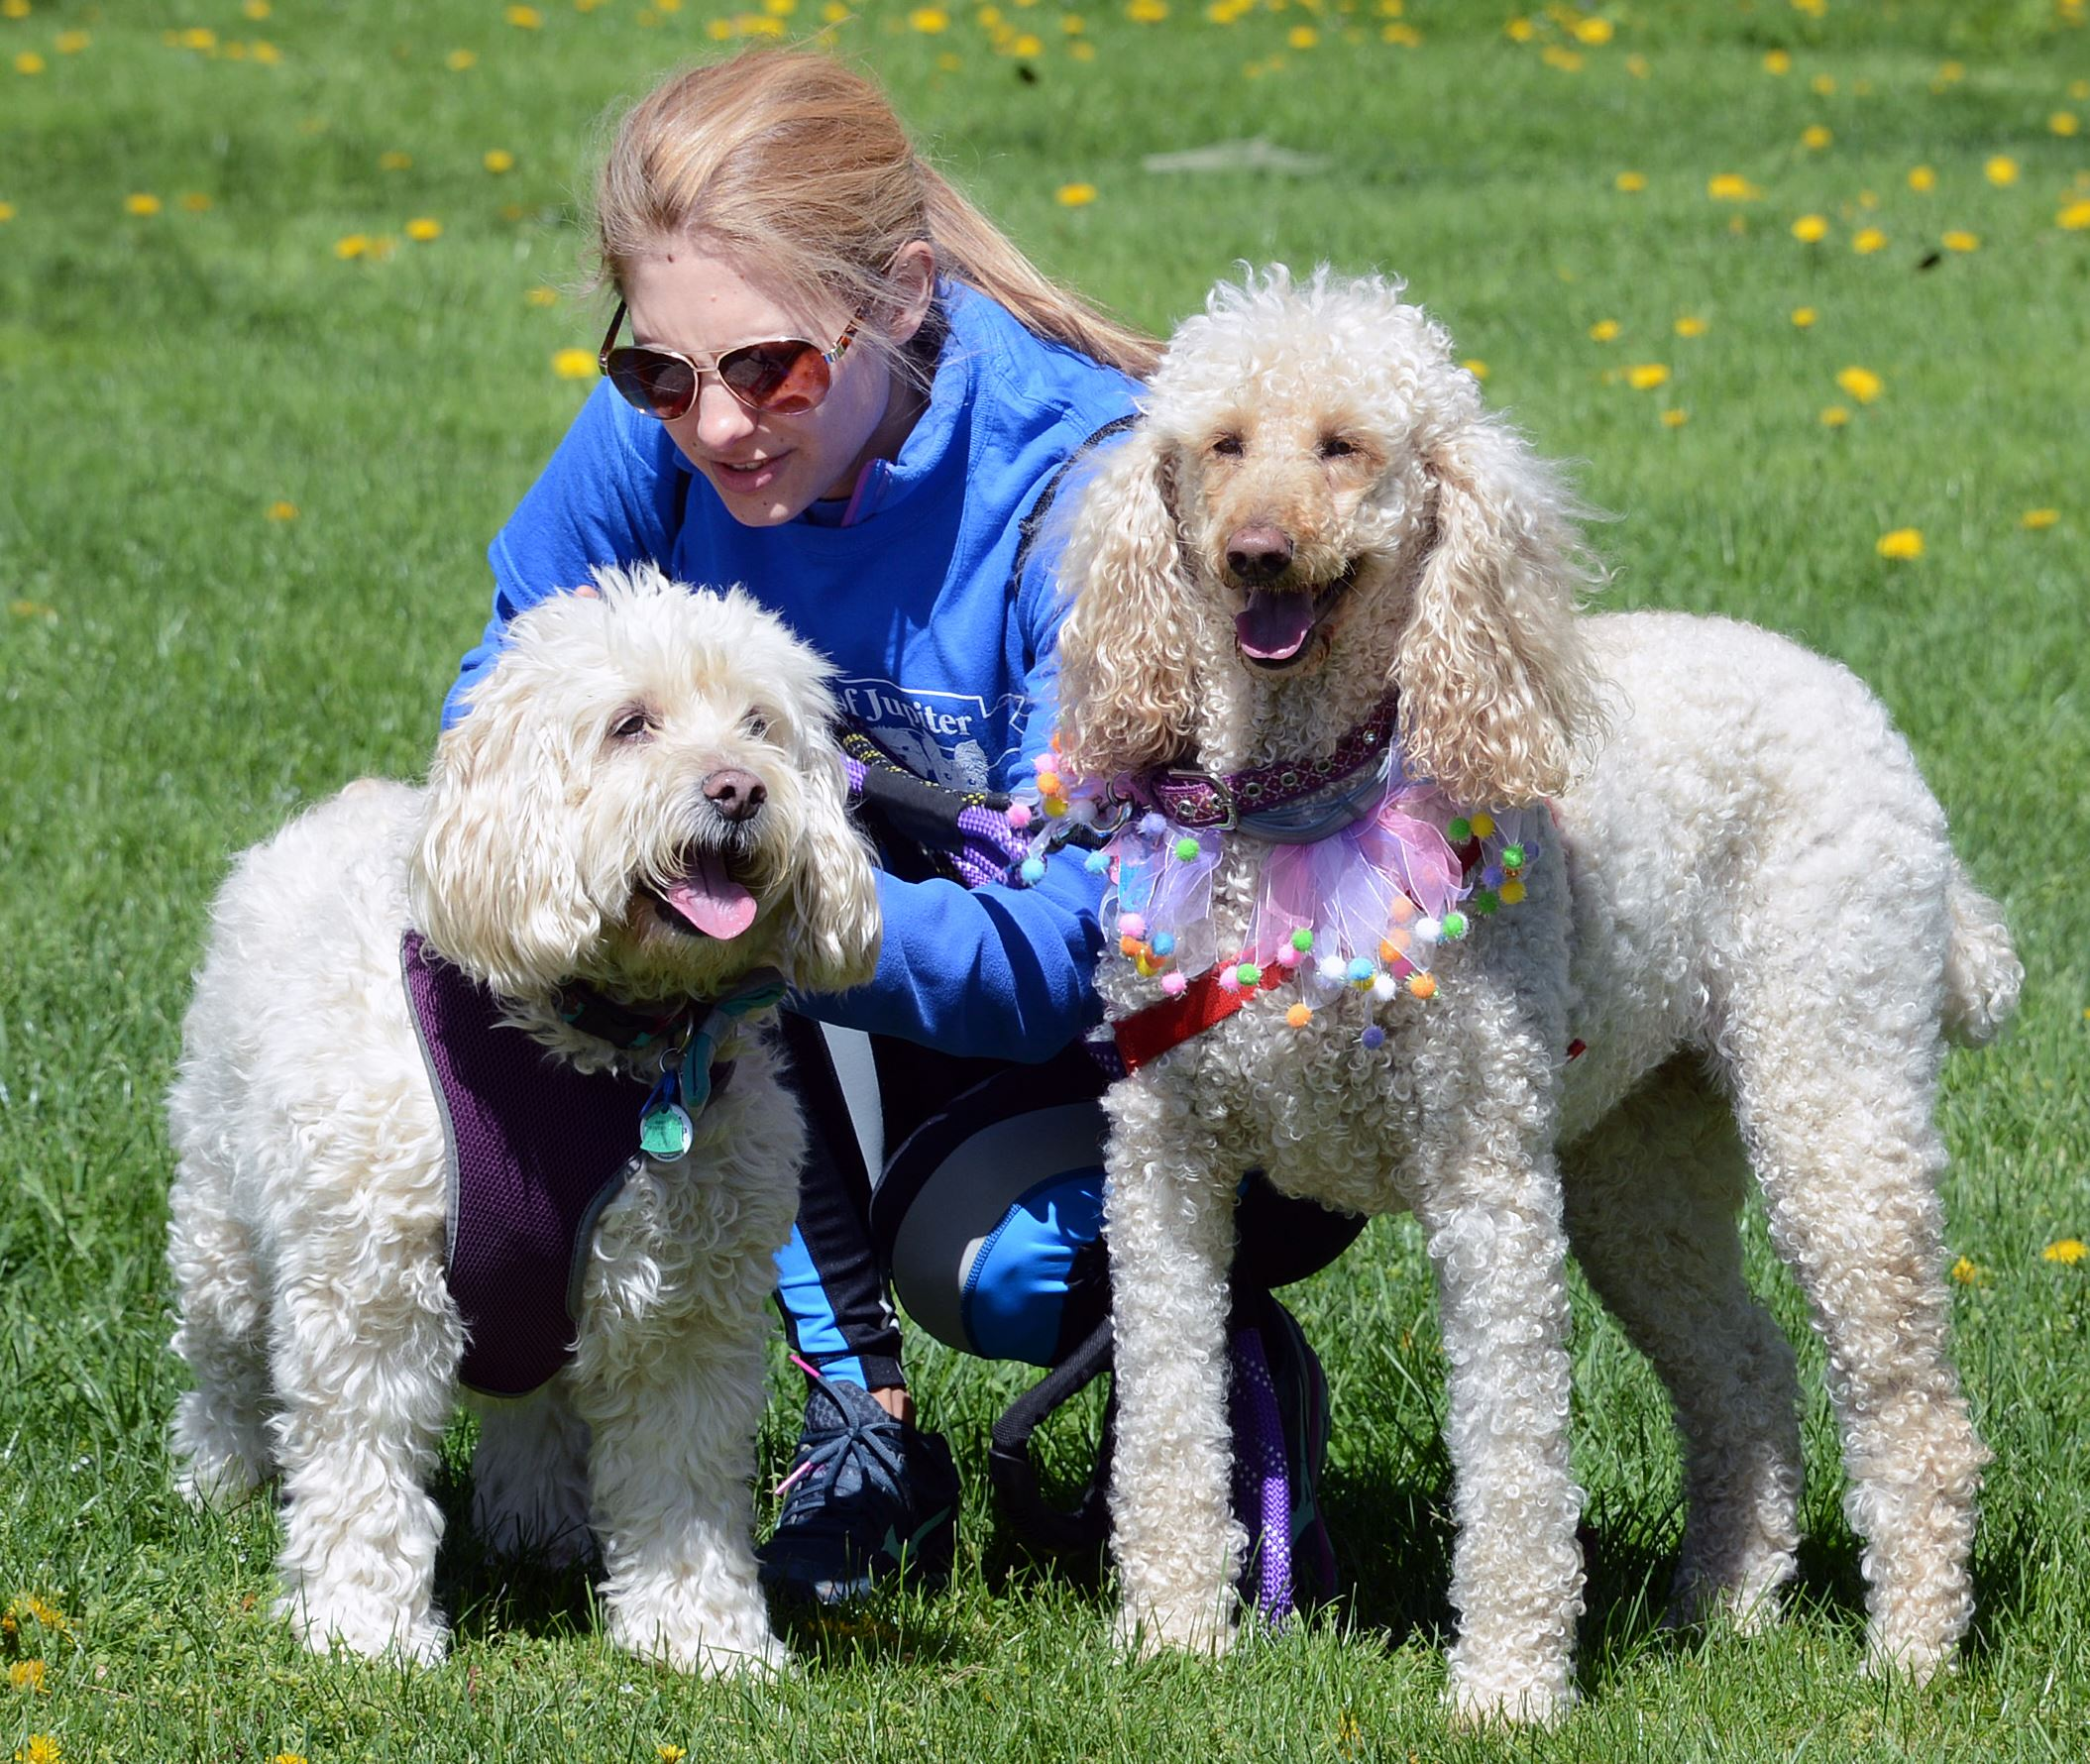 20170423ng-Petwalk4-3 Rachel Mazur of Monroeville with her two dogs during the during the Friends of Jupiter Walk in Boyce Park Sunday.